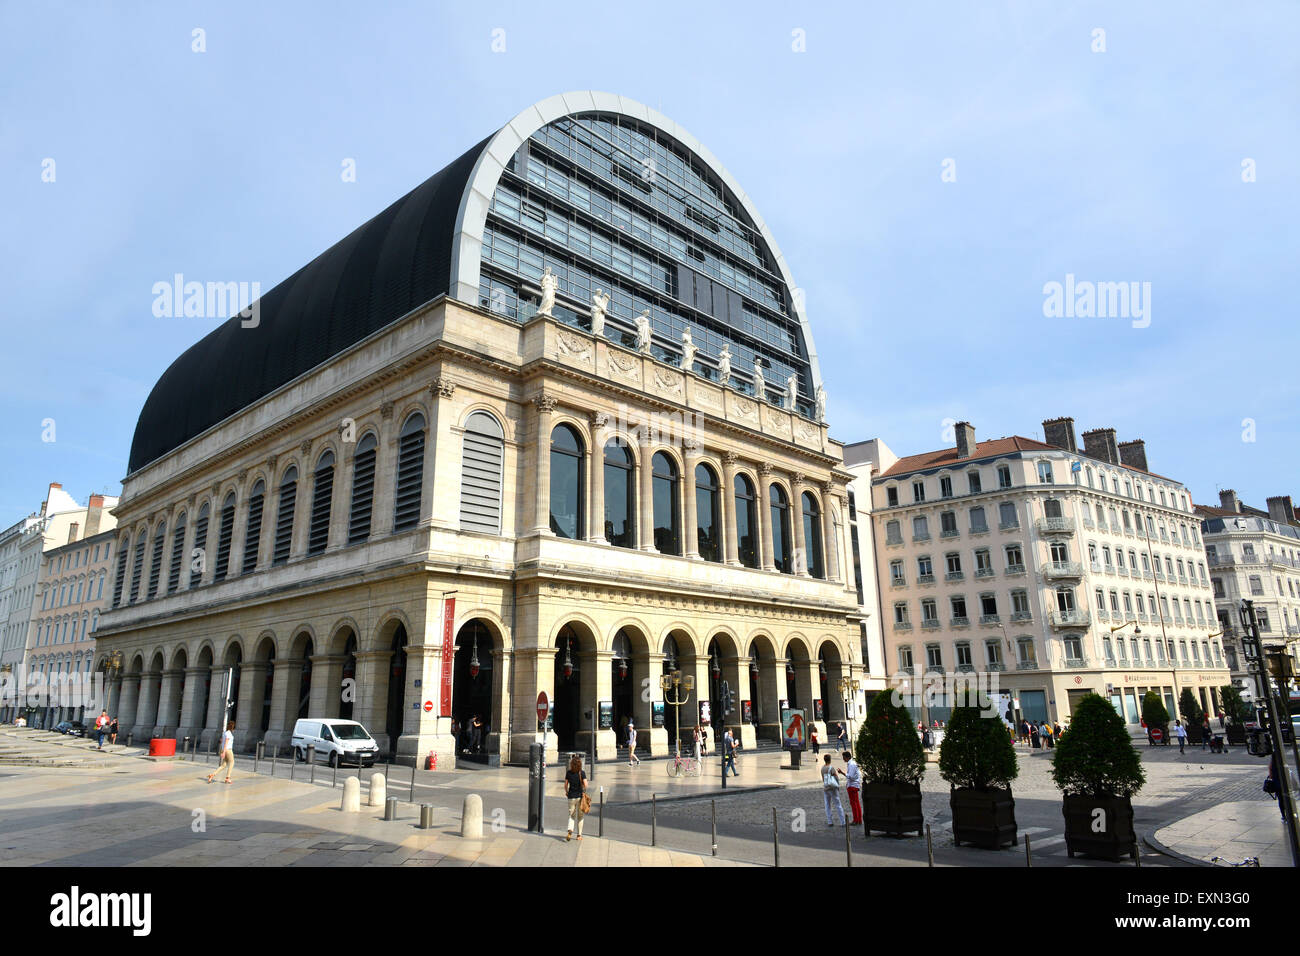 Modern Architecture France opera national de lyon opera house theatre rhone-alpes, france old